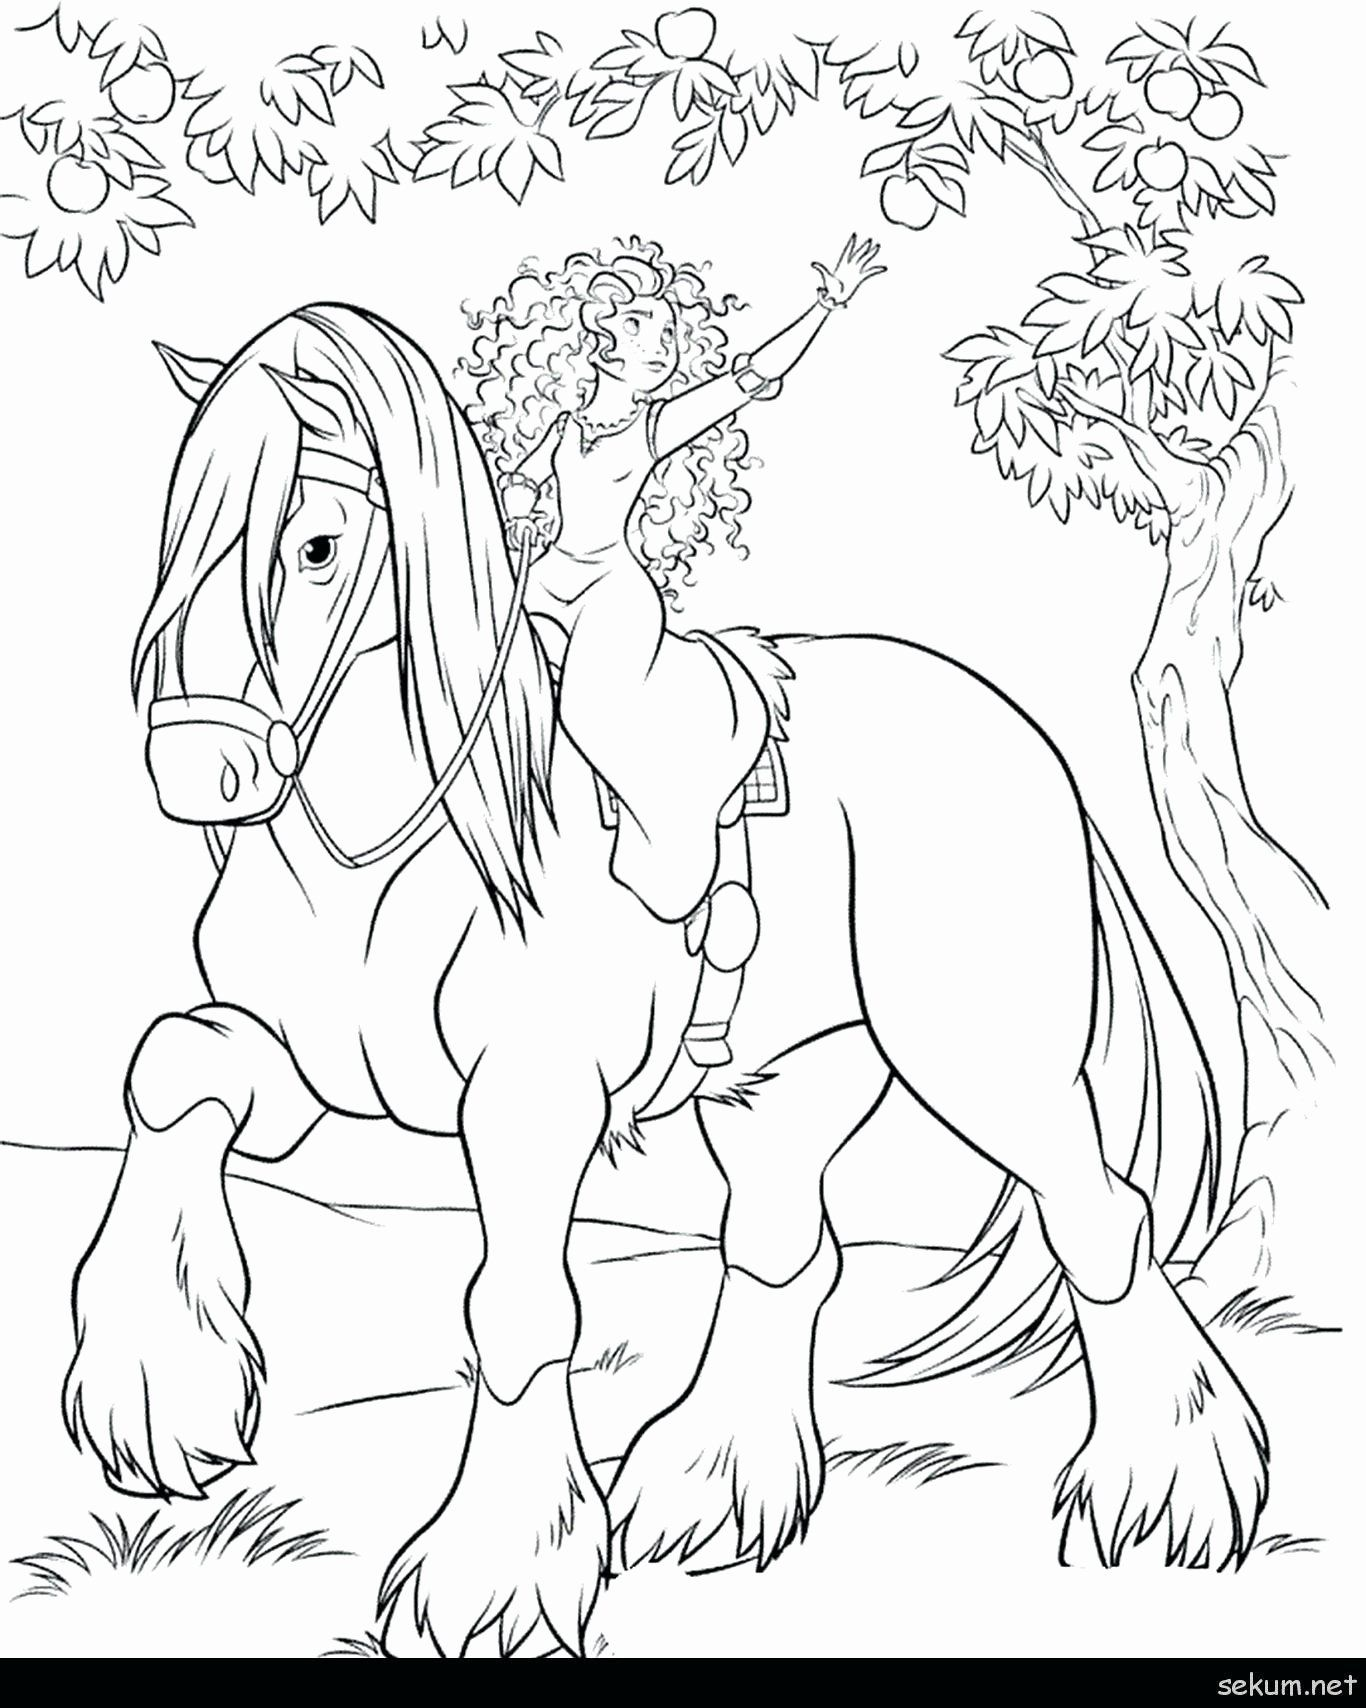 Pin By Crazyhorse On Disney Horse Coloring In 2020 Horse Coloring Pages Horse Coloring Coloring Pages